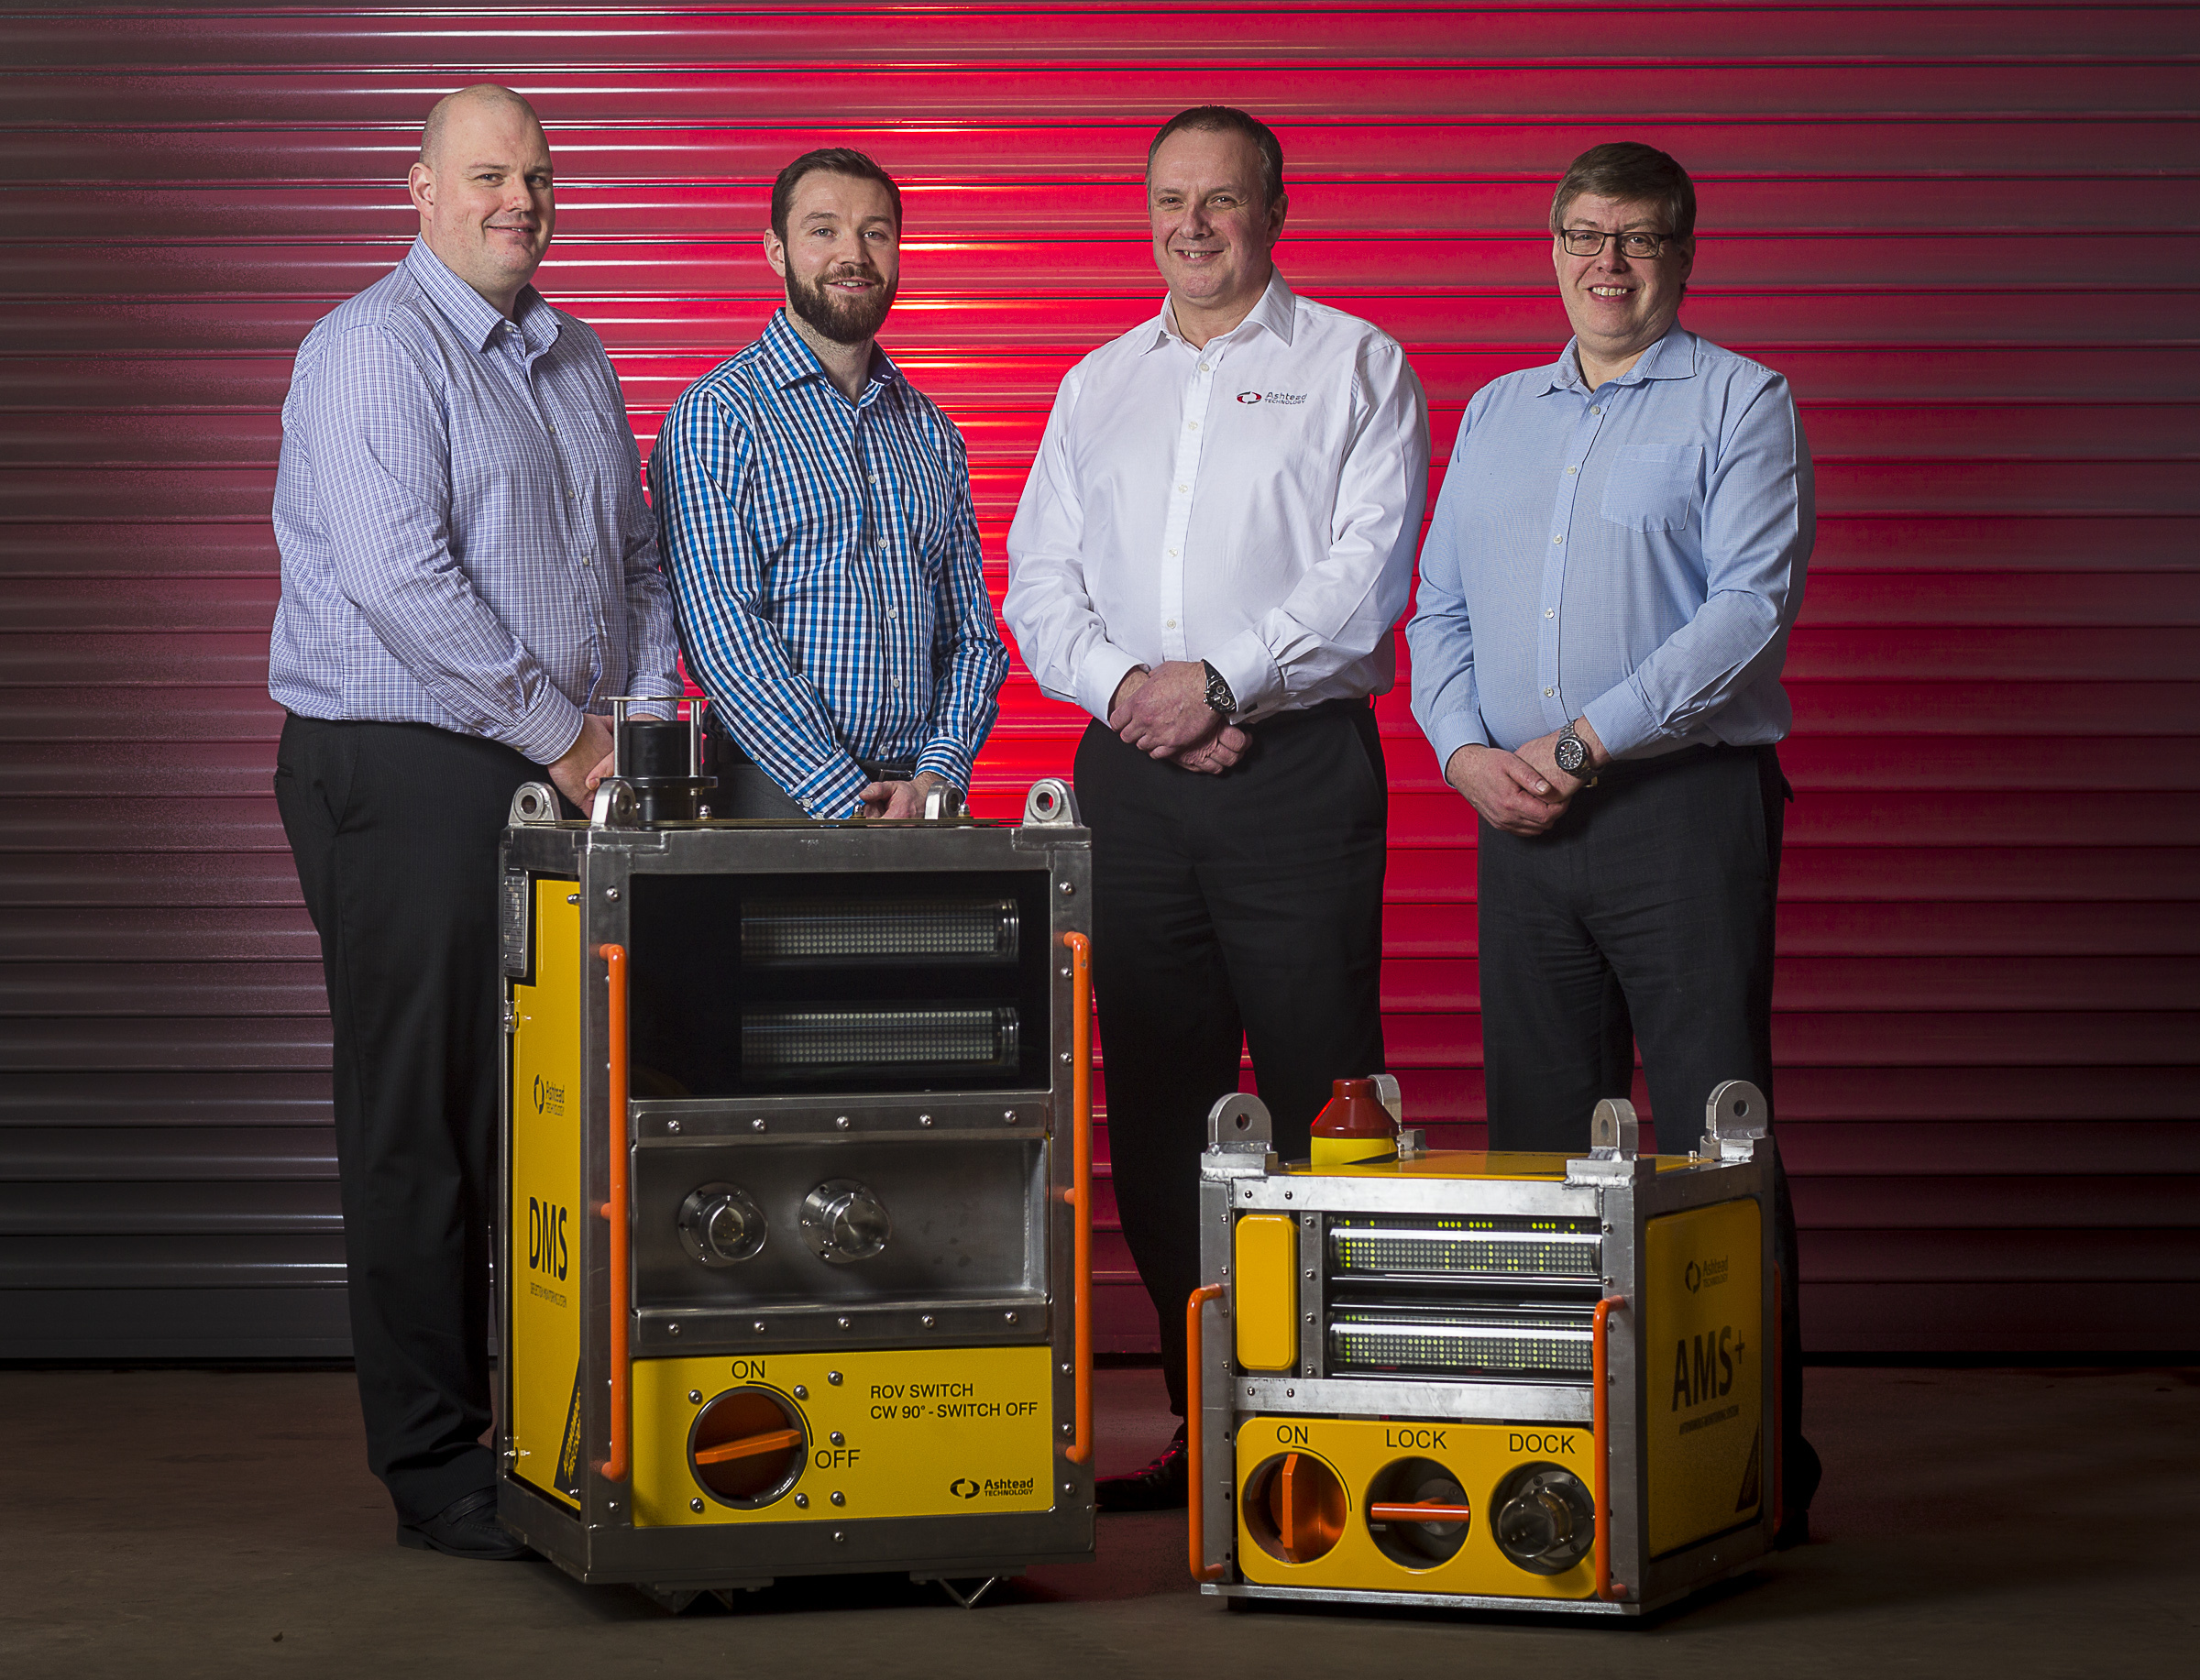 : Ashtead's newly formed engineered measurement solutions group – (L to R) Mark Ellington, Scott Smith, Ross MacLeod, and Alistair Birnie.